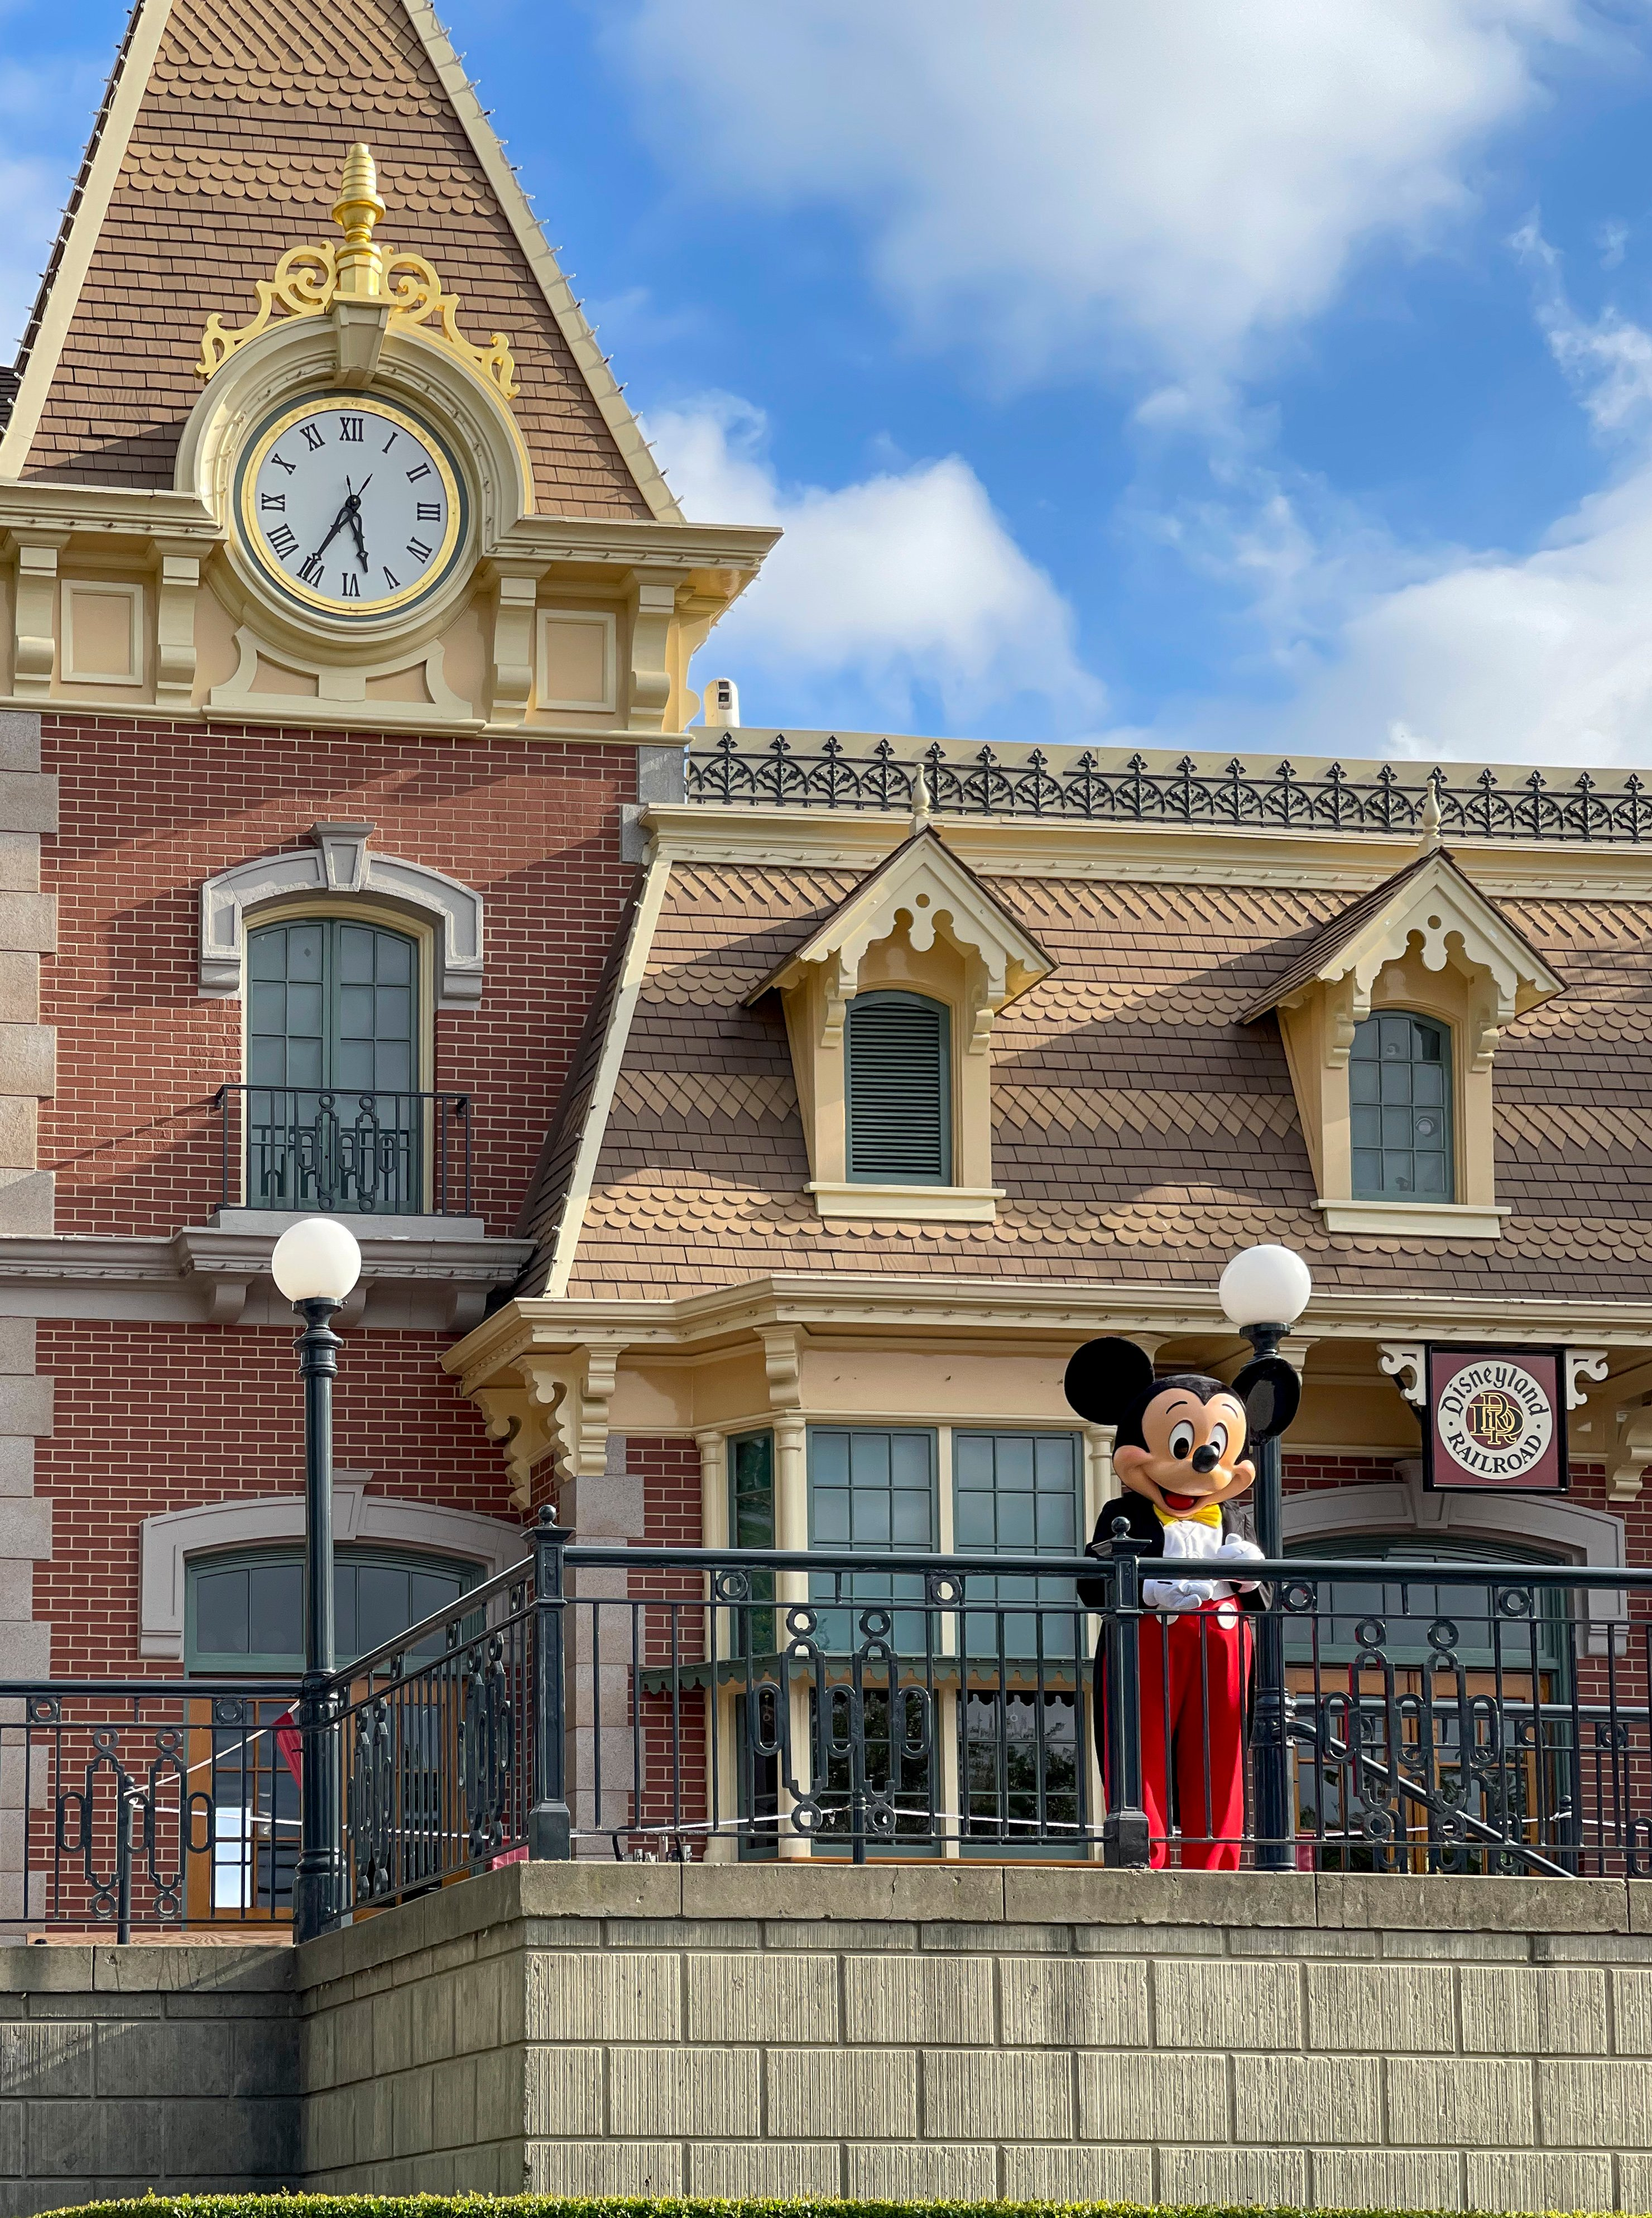 Mickey Mouse greets guests from the Disneyland Railroad station.